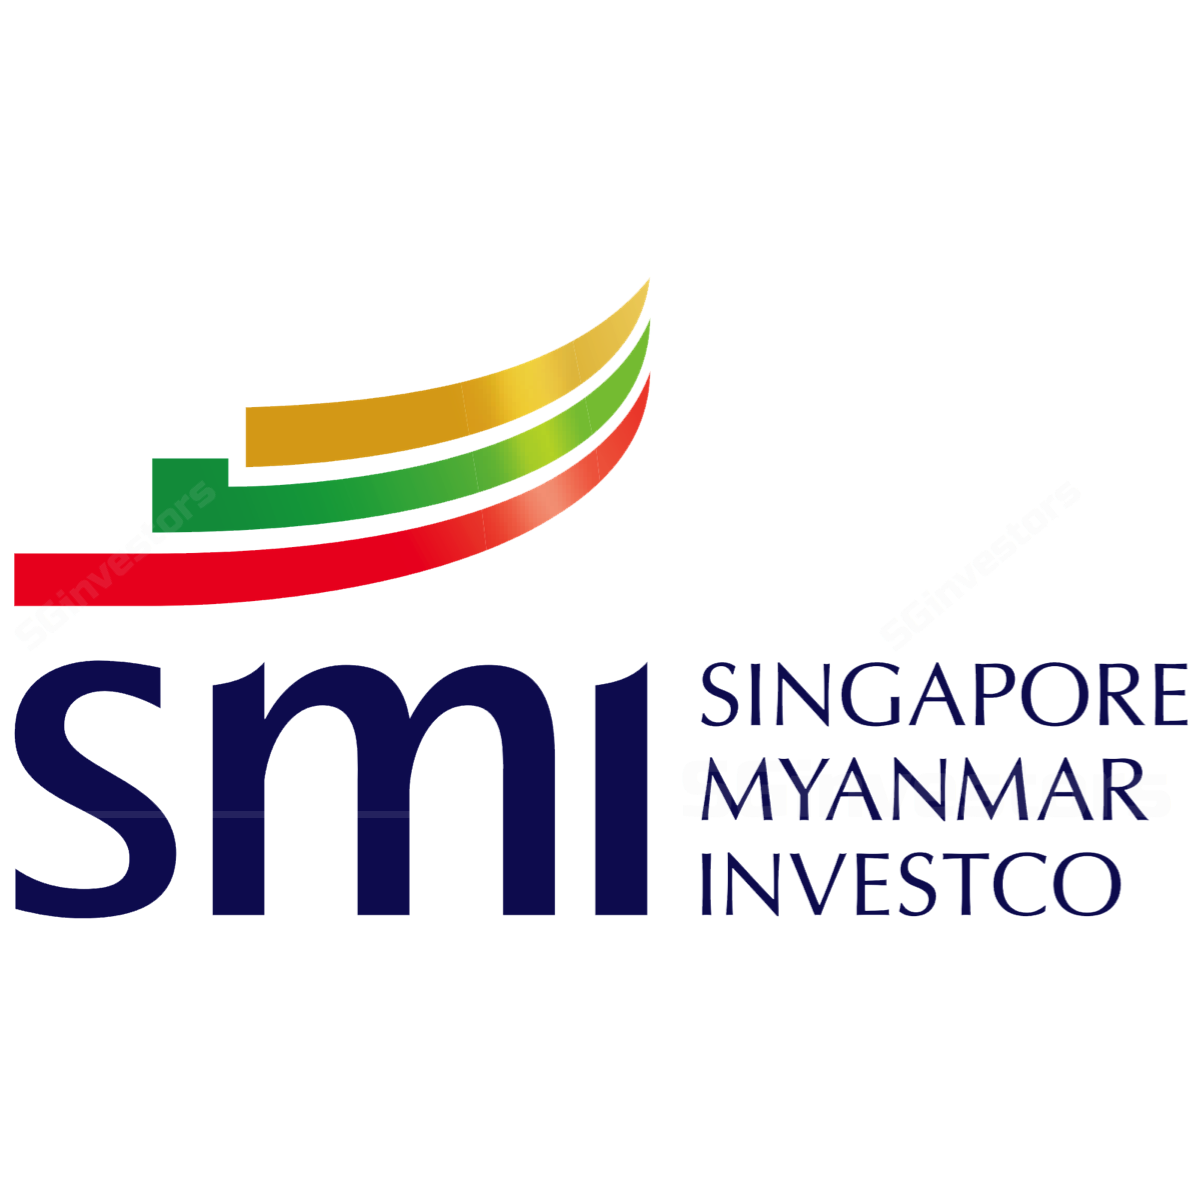 Singapore Myanmar Investco - OCBC Investment 2017-07-03: Reviewing Its Tower Telecom Business